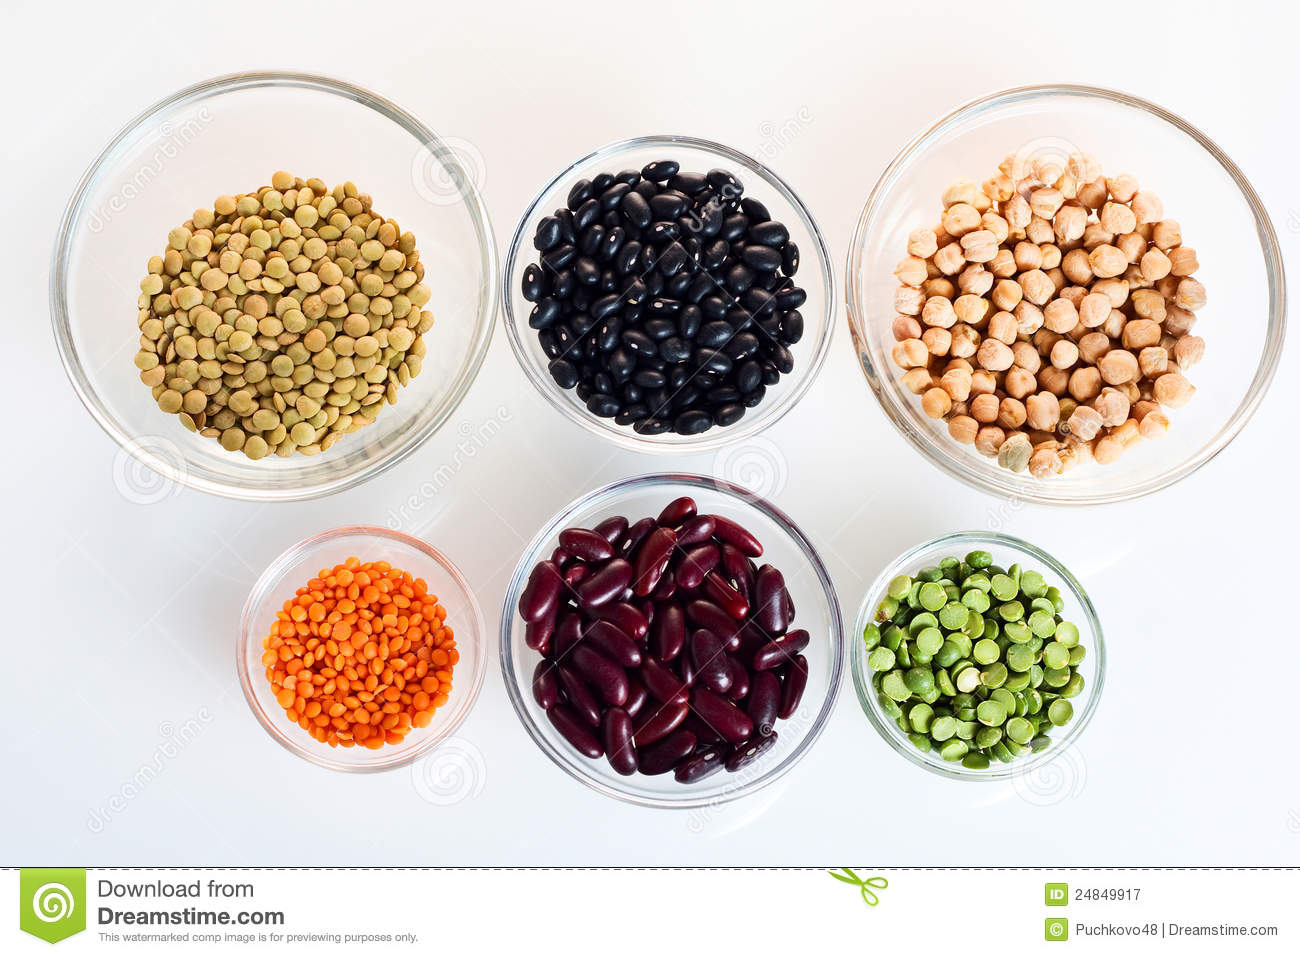 Assorted beans and legumes